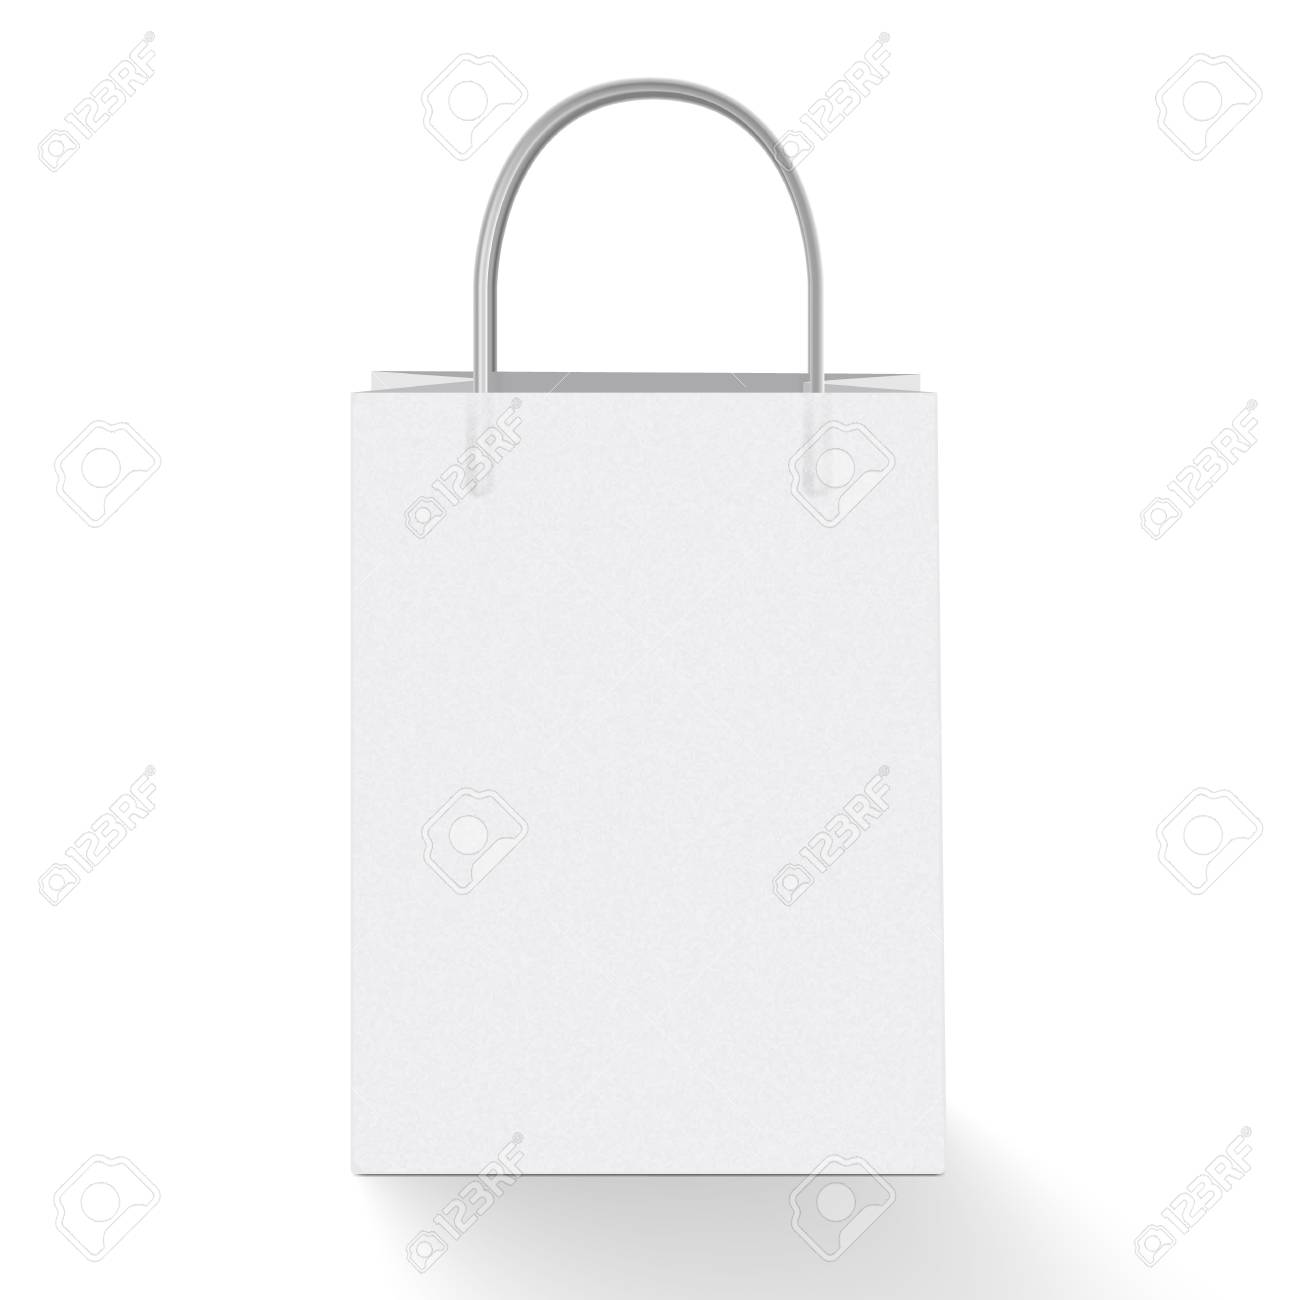 shopping bag template  3d Realistic Vector Illustration Of White Paper Shopping Bag ...